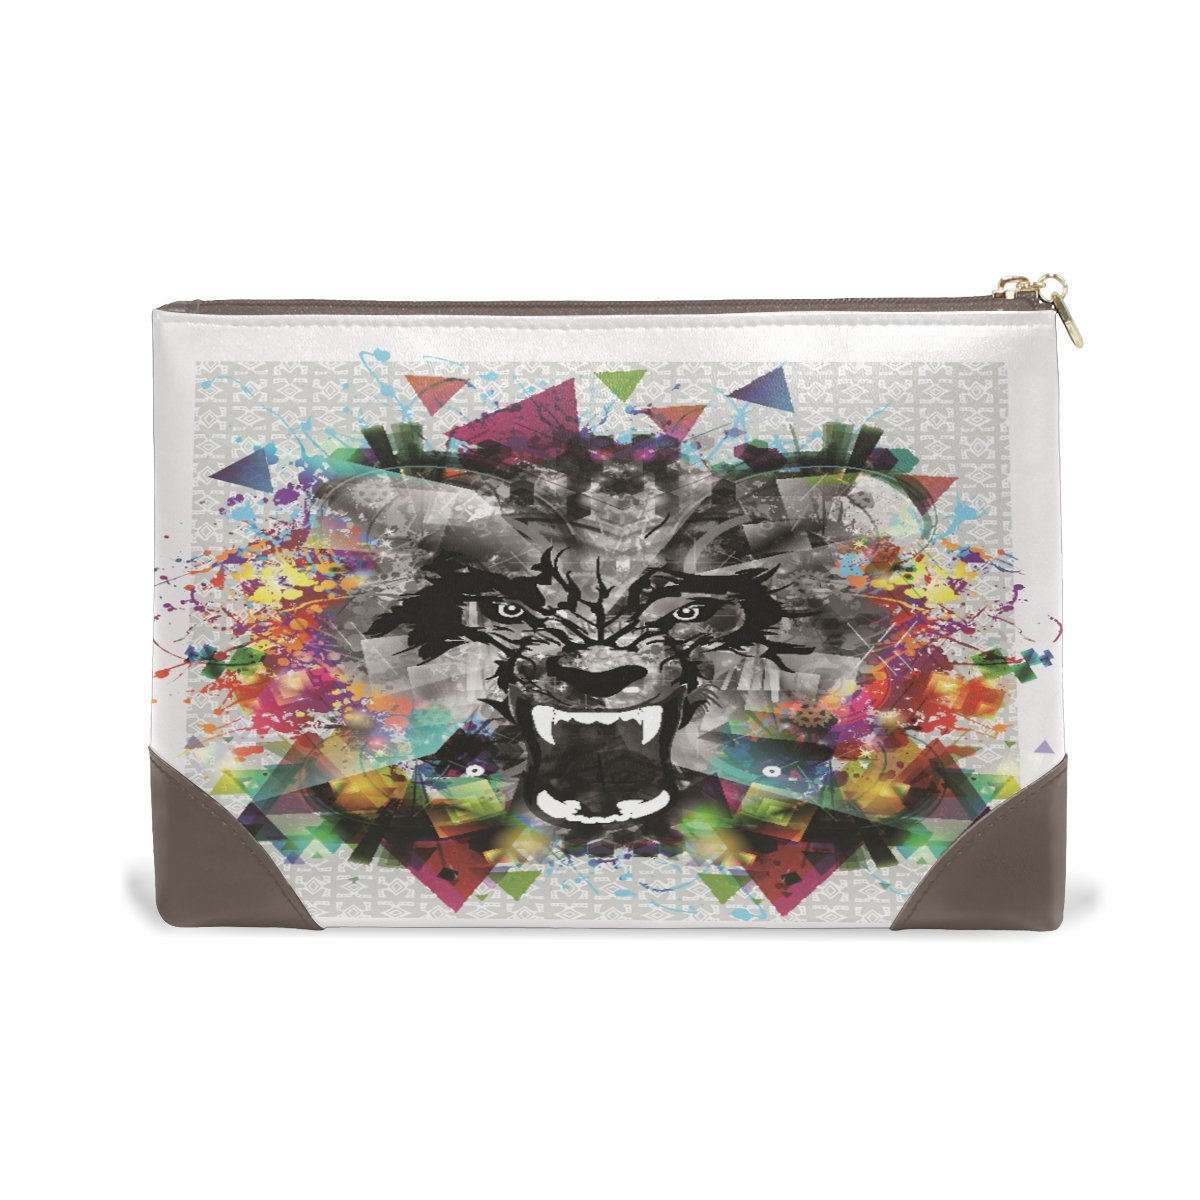 Limited price sale Genuine Leather Makeup Bag Wild Comestic Beast Today's only Ladies Case With